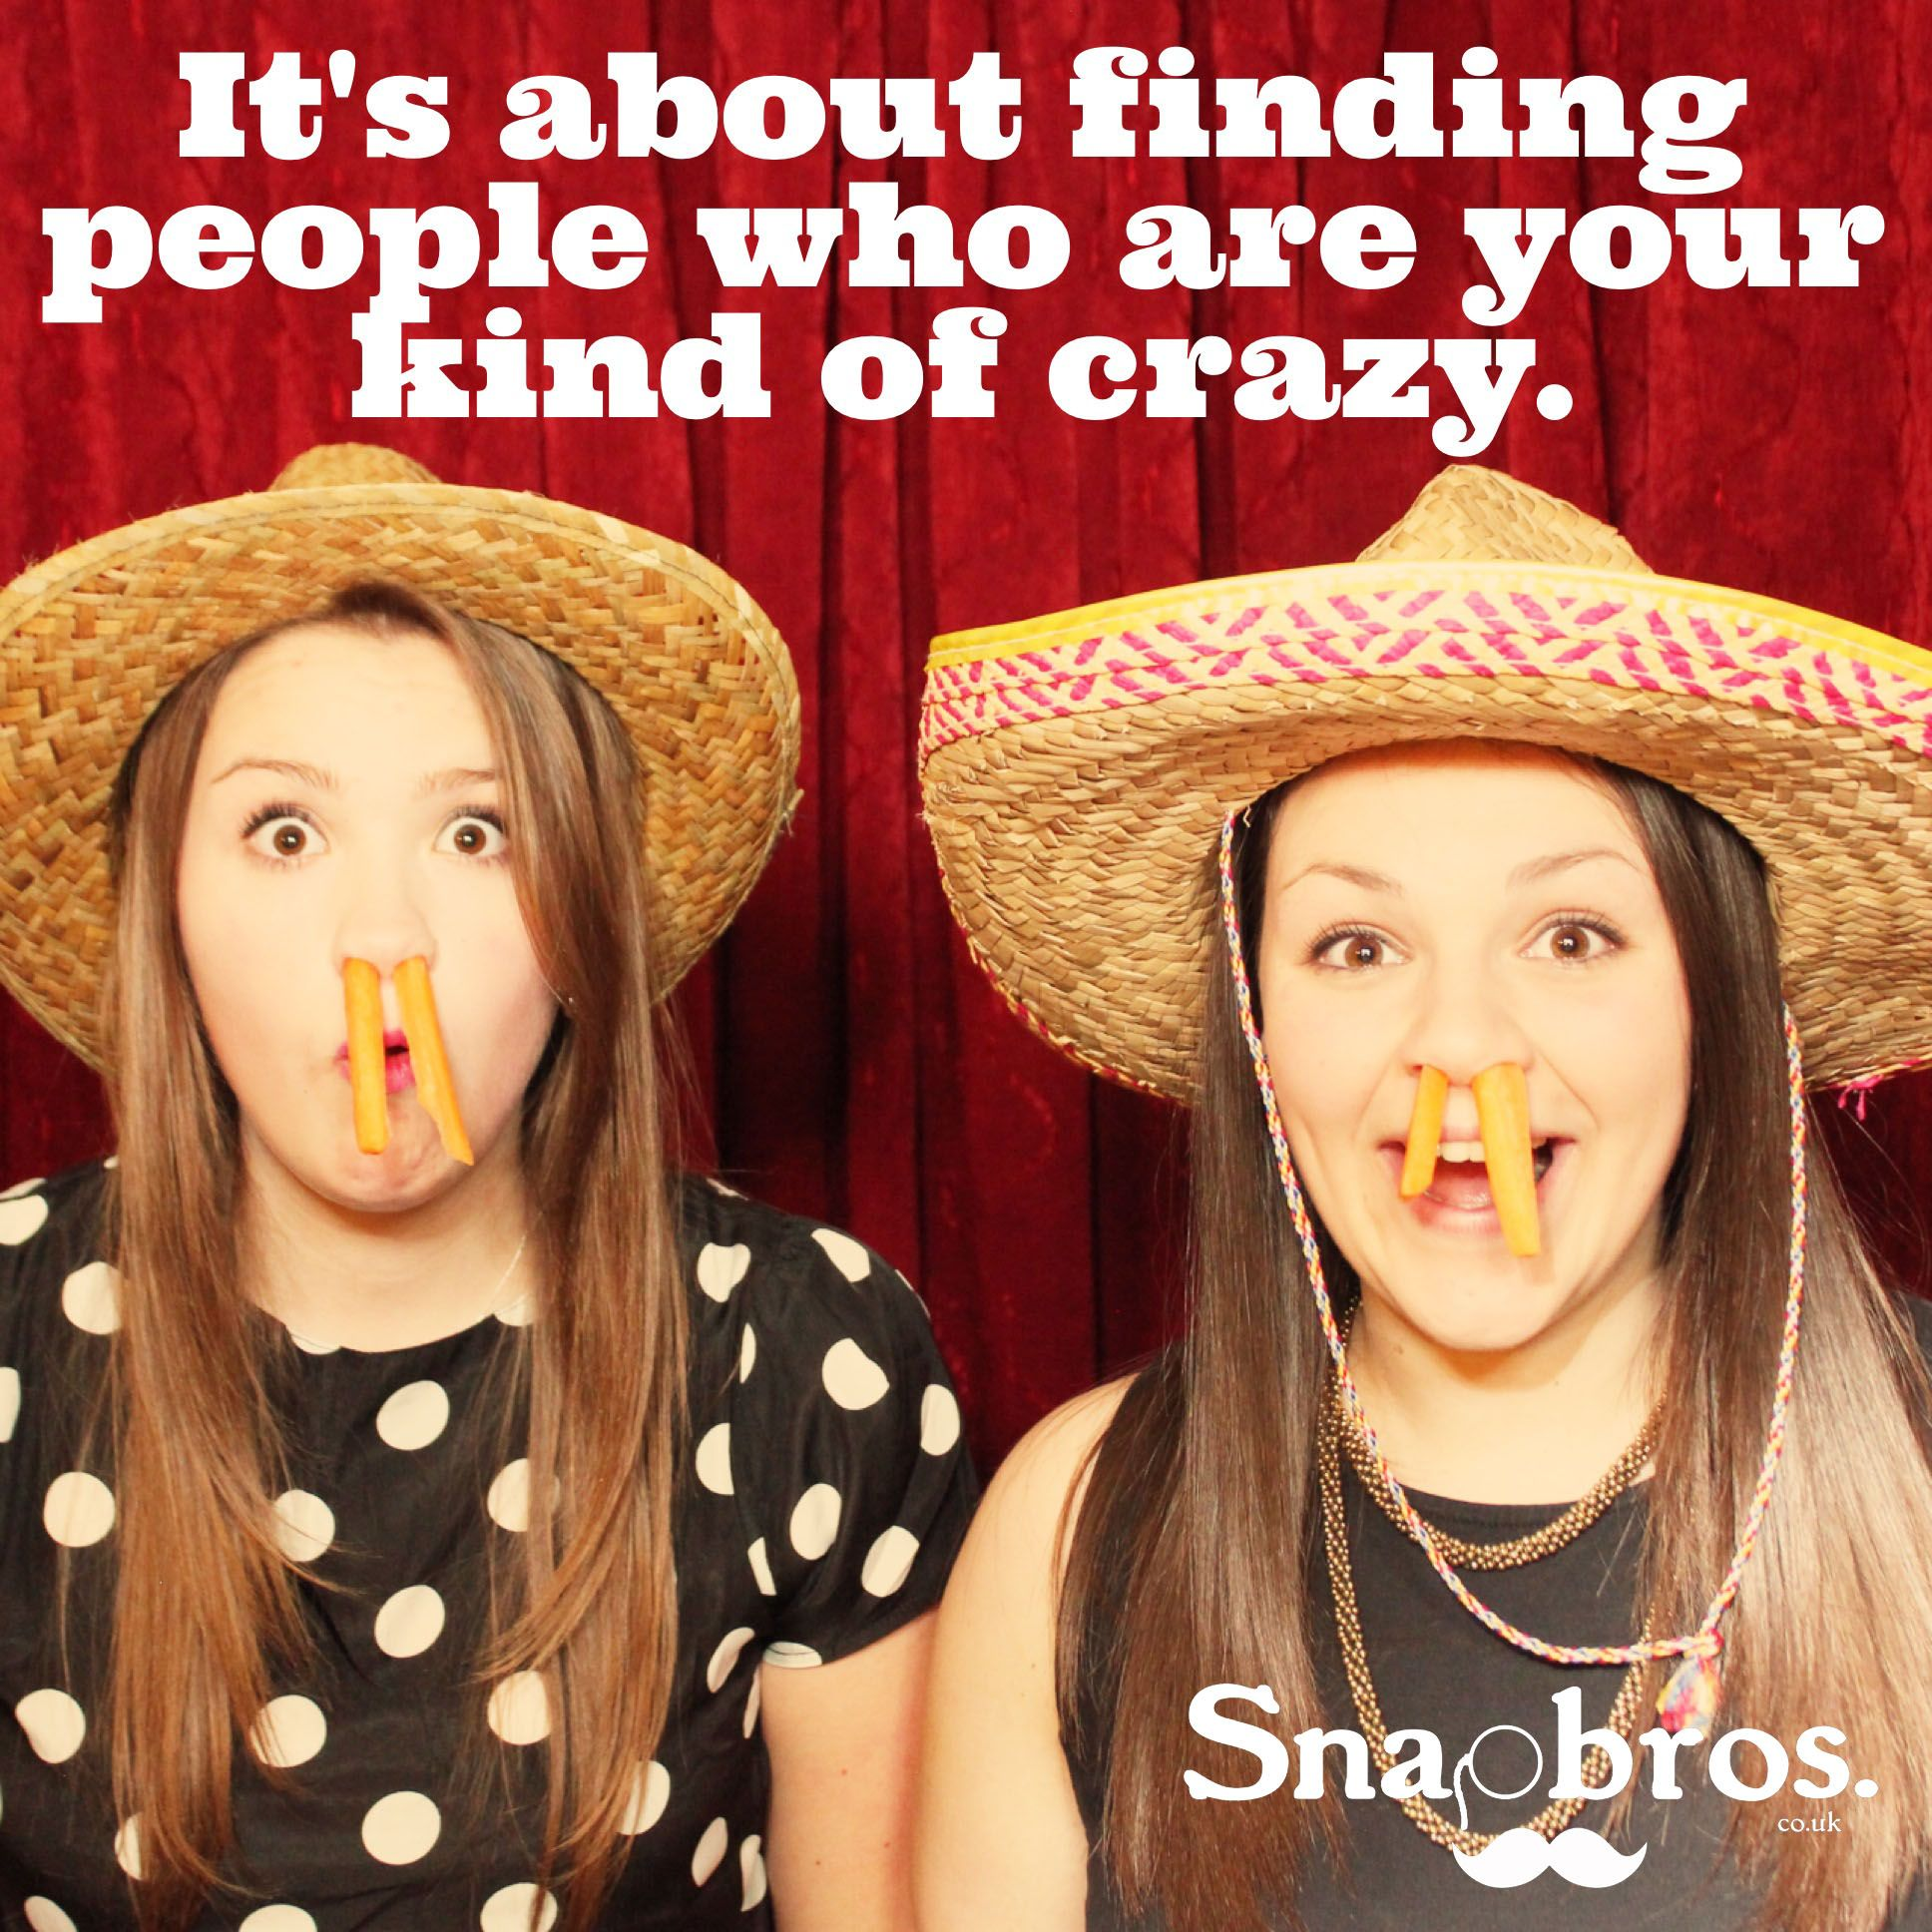 It's about finding people who are your kind of crazy.